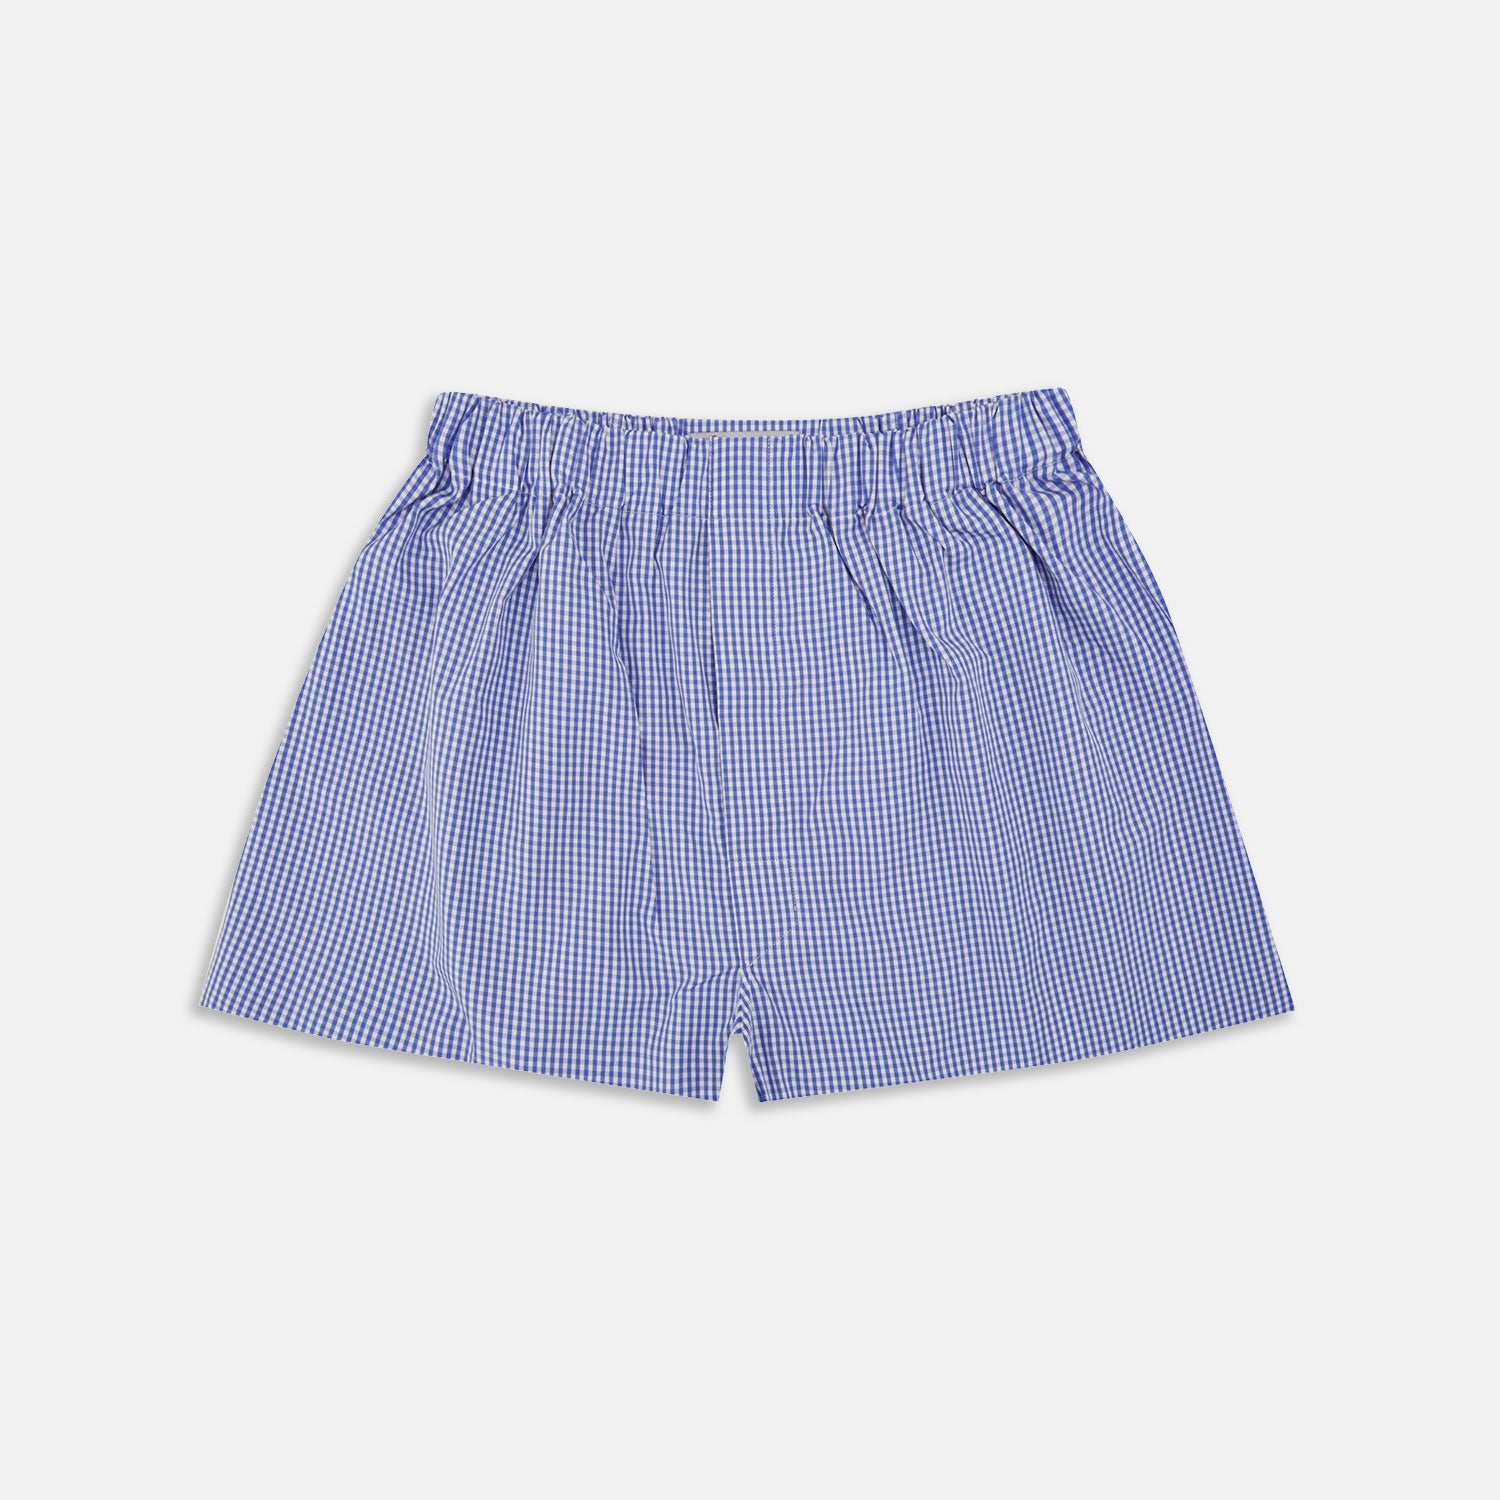 Mid-Blue Gingham Cotton Boxer Shorts - M from Turnbull & Asser